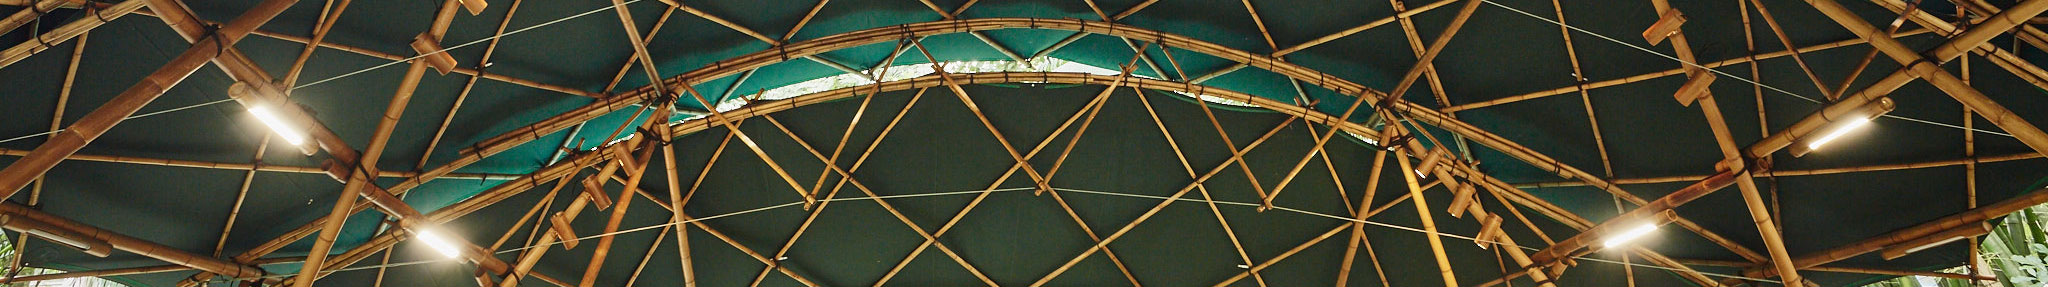 2-bamboo-amphitheater-space-structure-ArchDaily.jpg